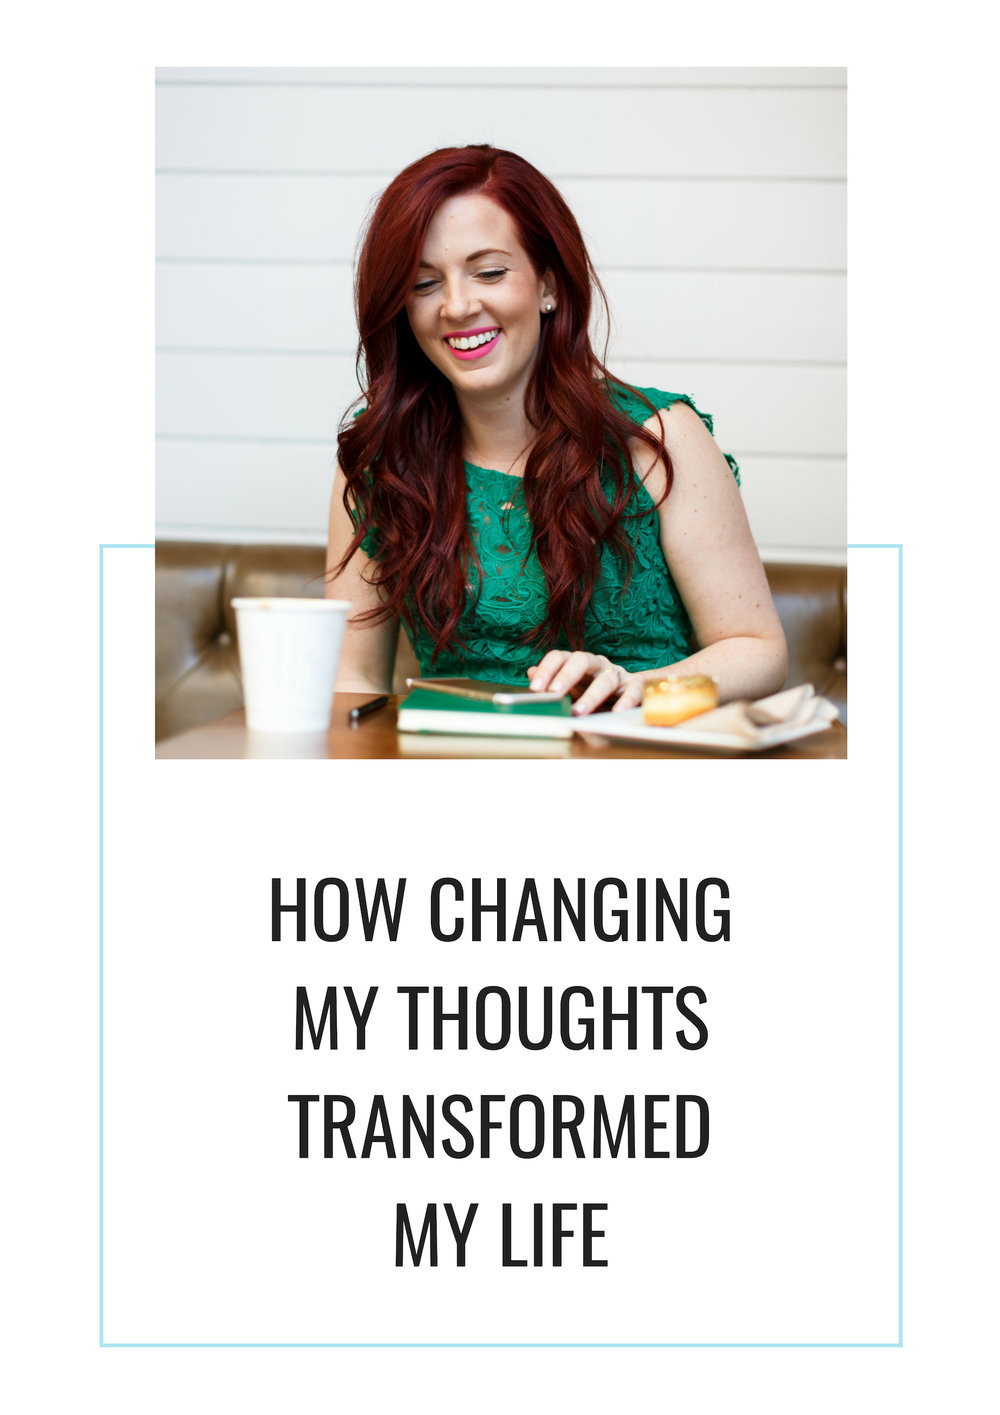 how-changing-my-thoughts-transformed-my-life.jpg